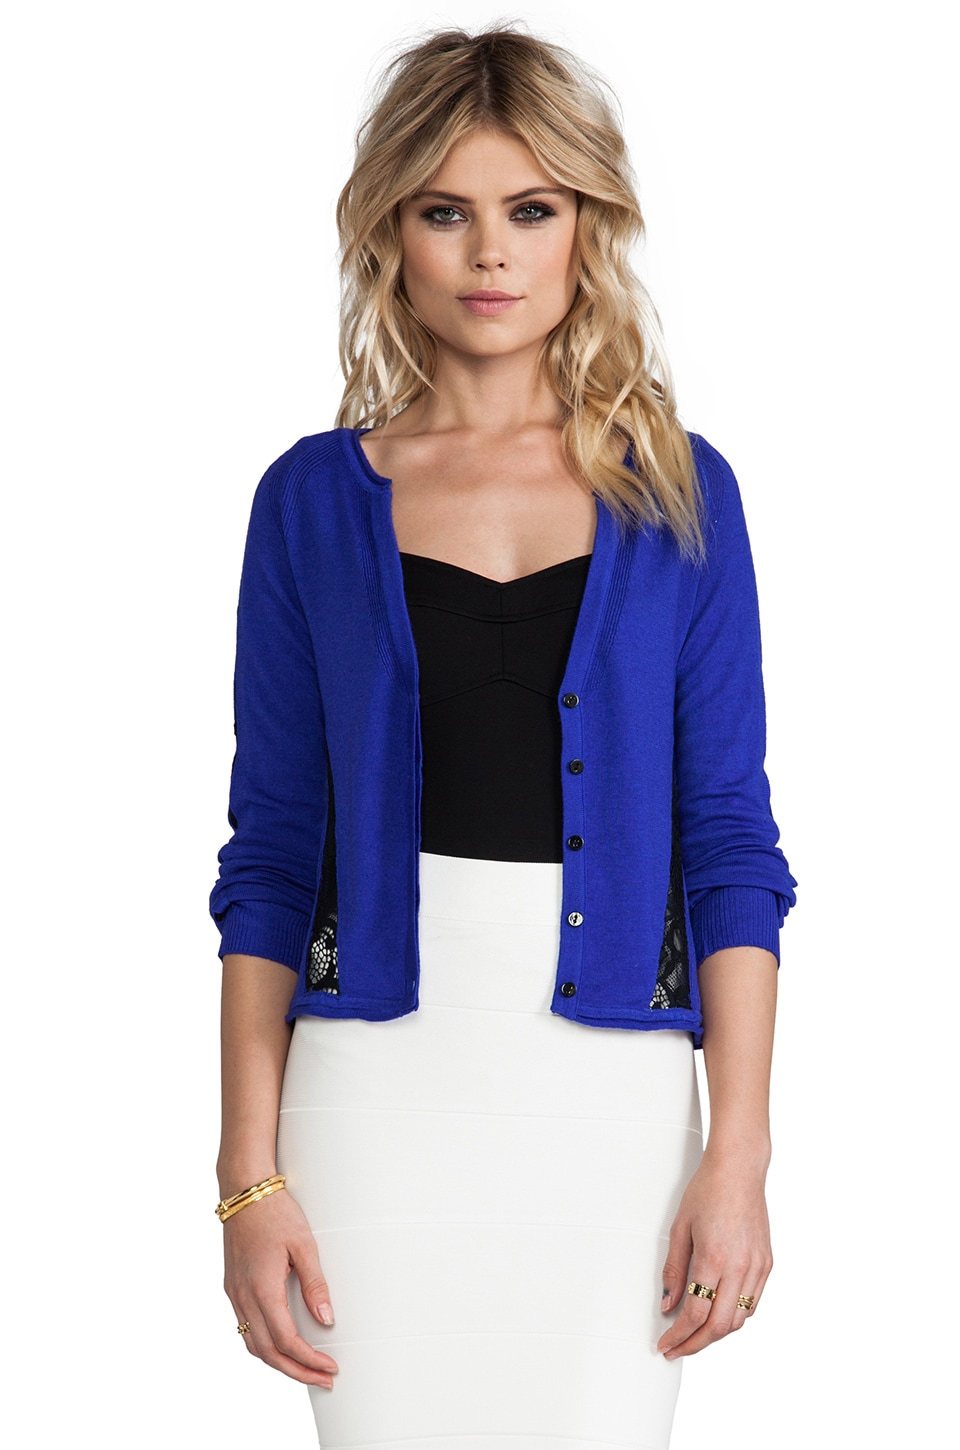 Nanette Lepore Patio Cardigan in Royal Blue